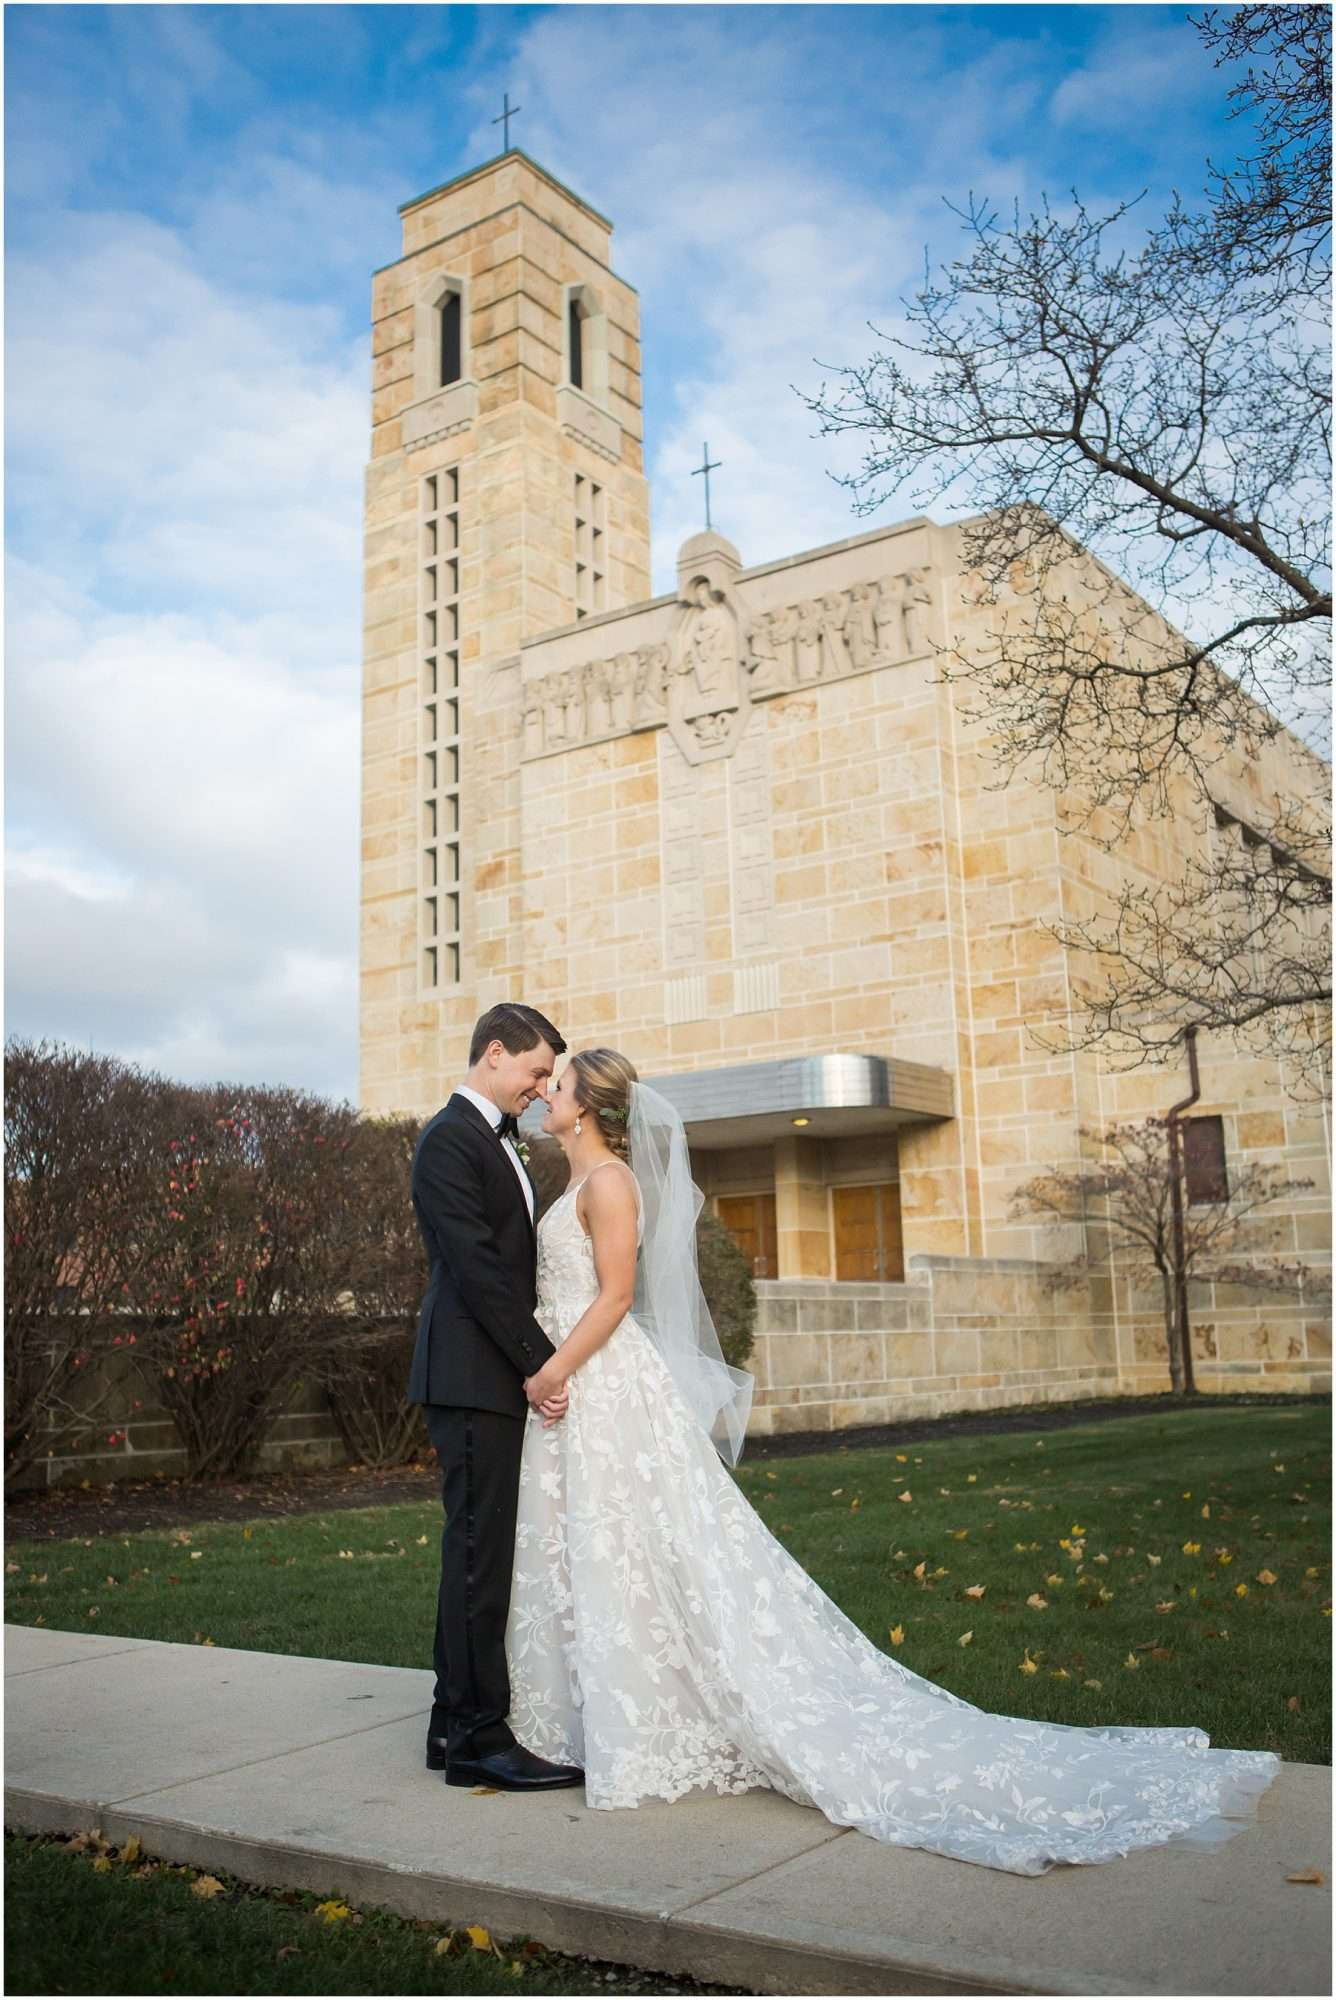 Wedding at the Ohio Statehouse | Columbus Ohio Weddings 122